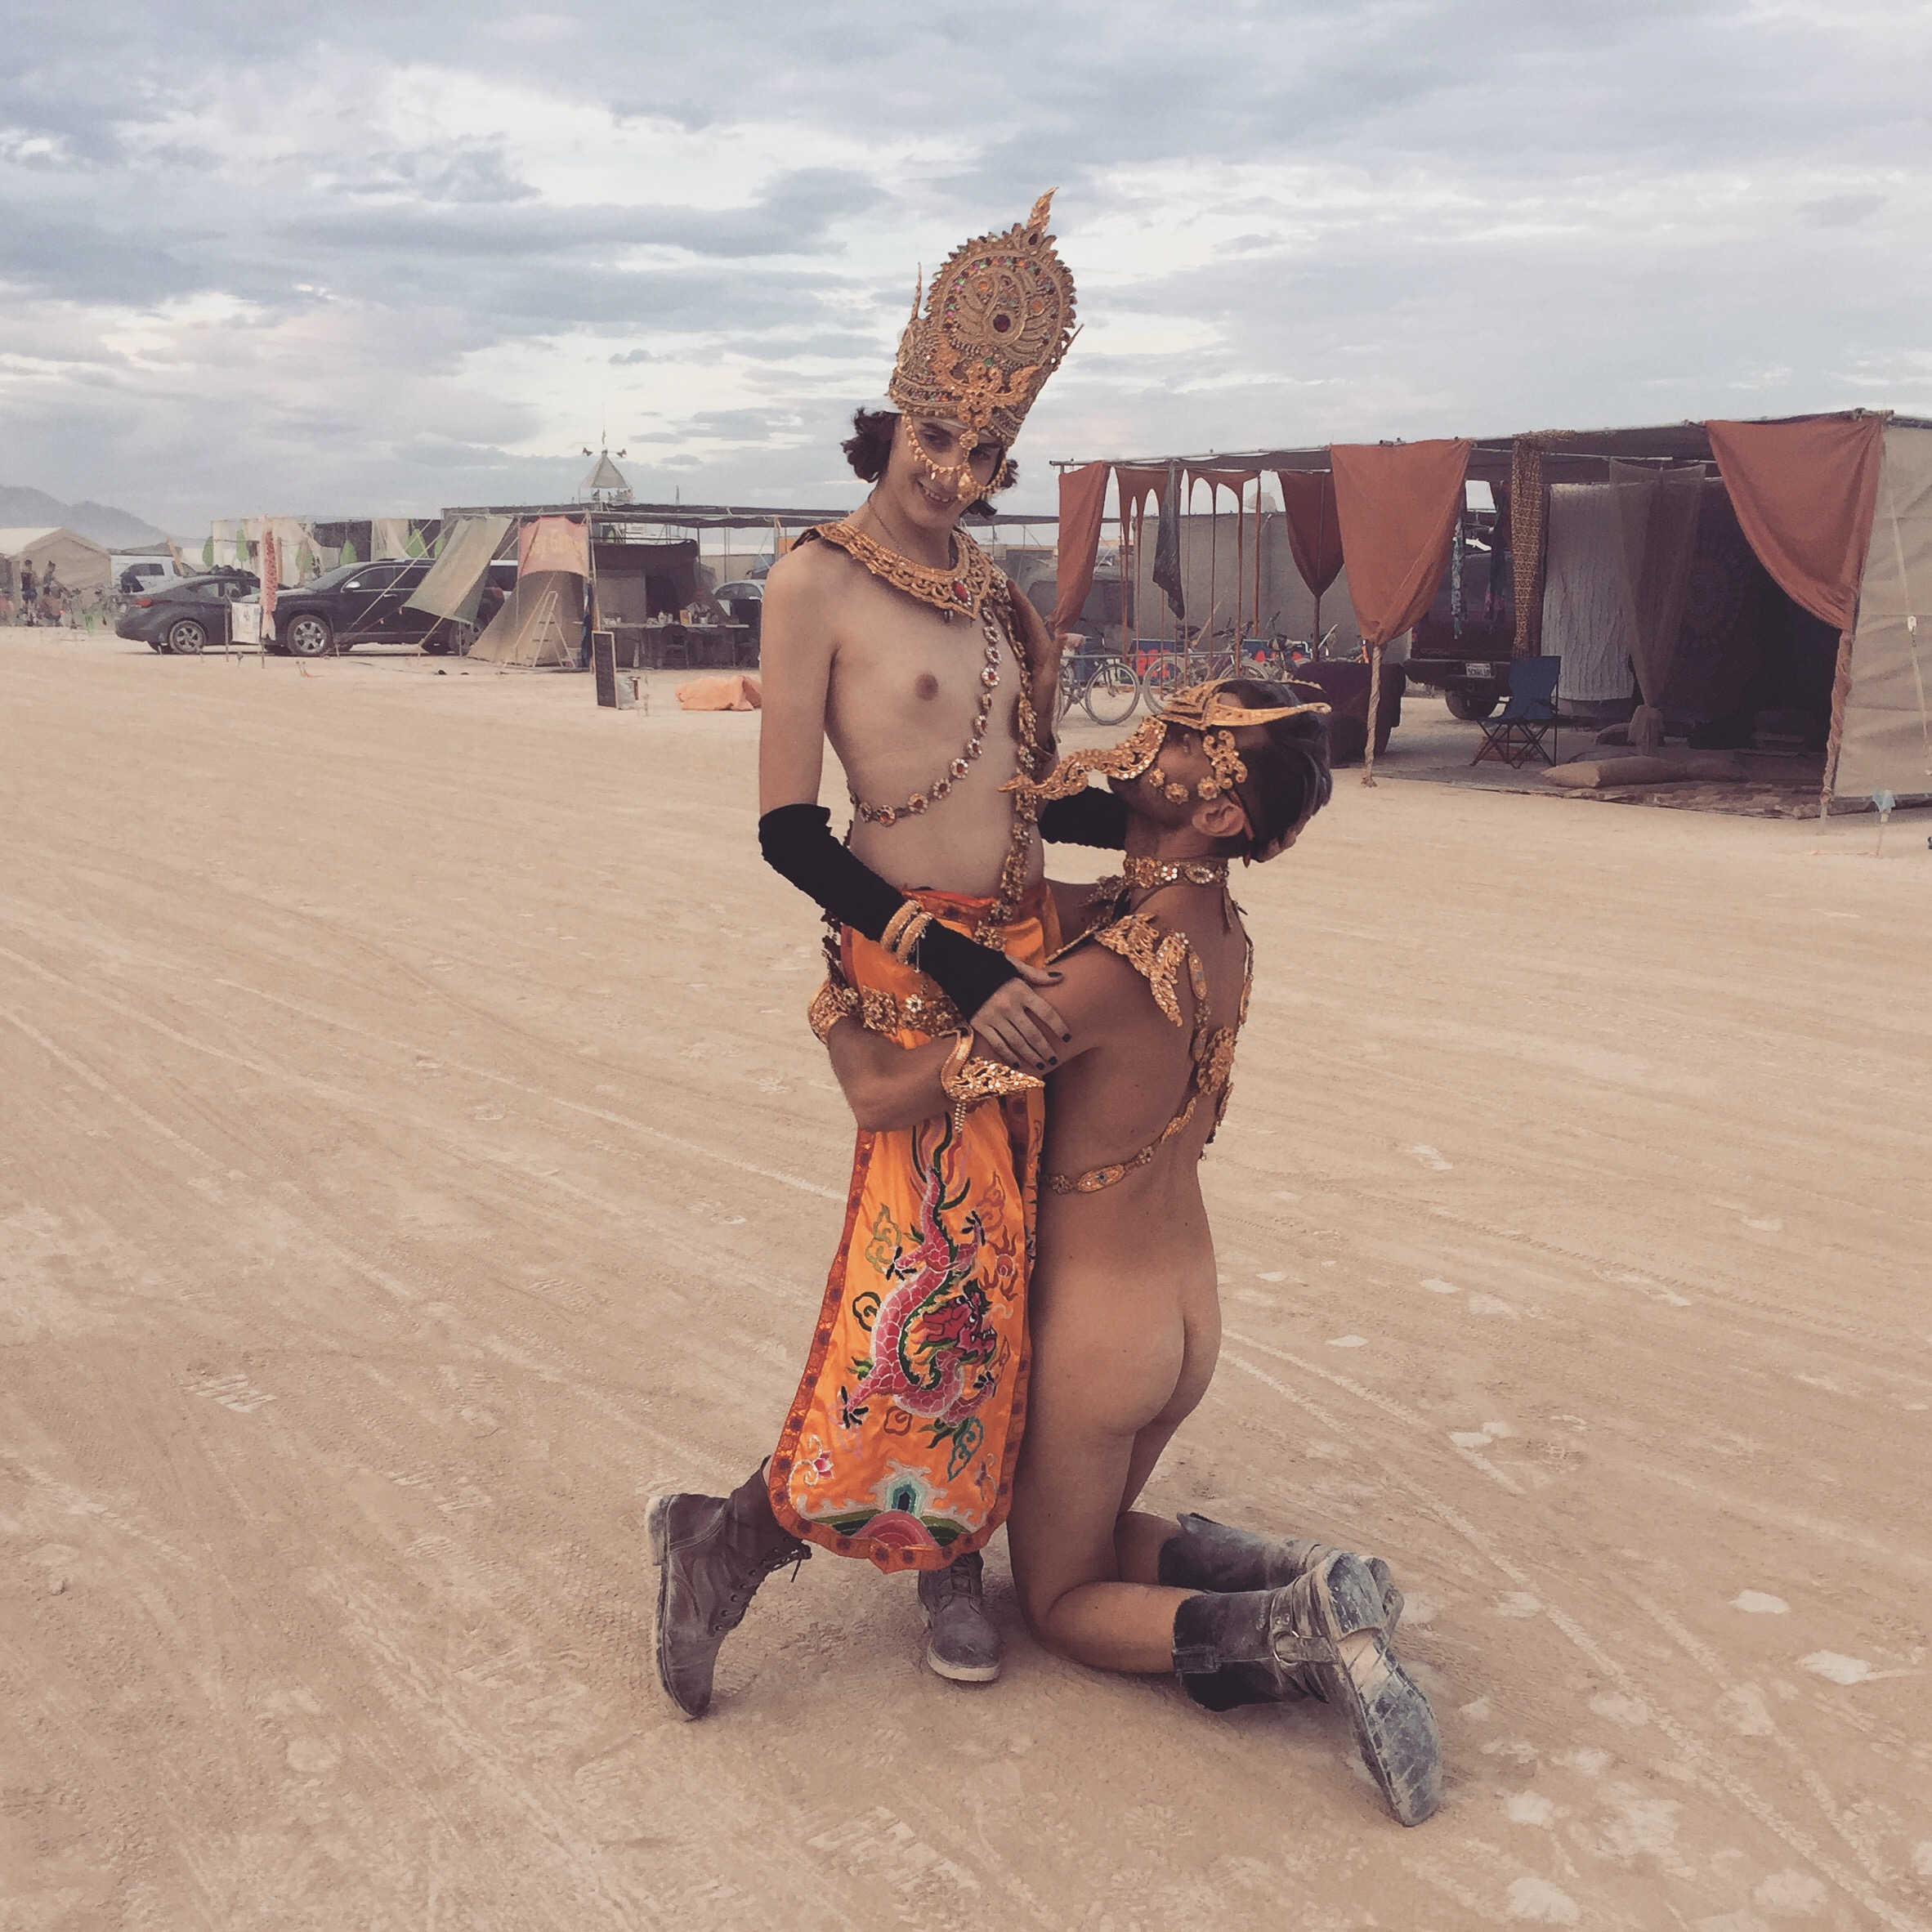 from Jamarion carrie at burning man nude